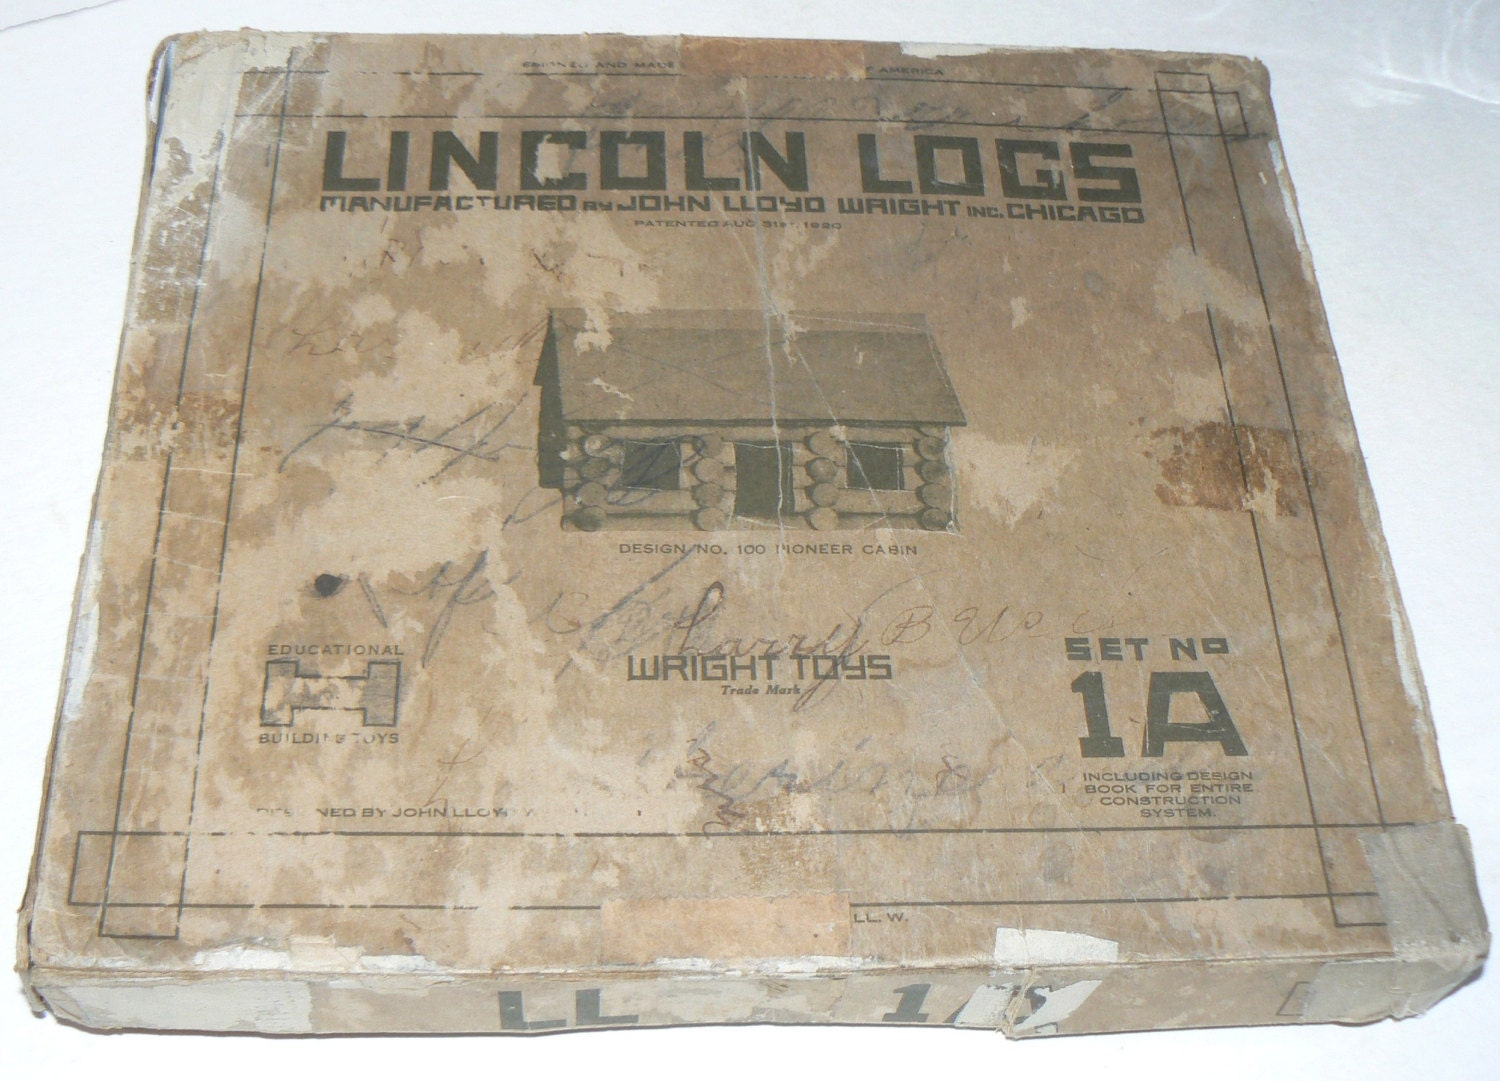 Antique 1920's LINCOLN LOG 1A Set in Box JL Wright Toys Building Contest Sheet - KrauseHaus